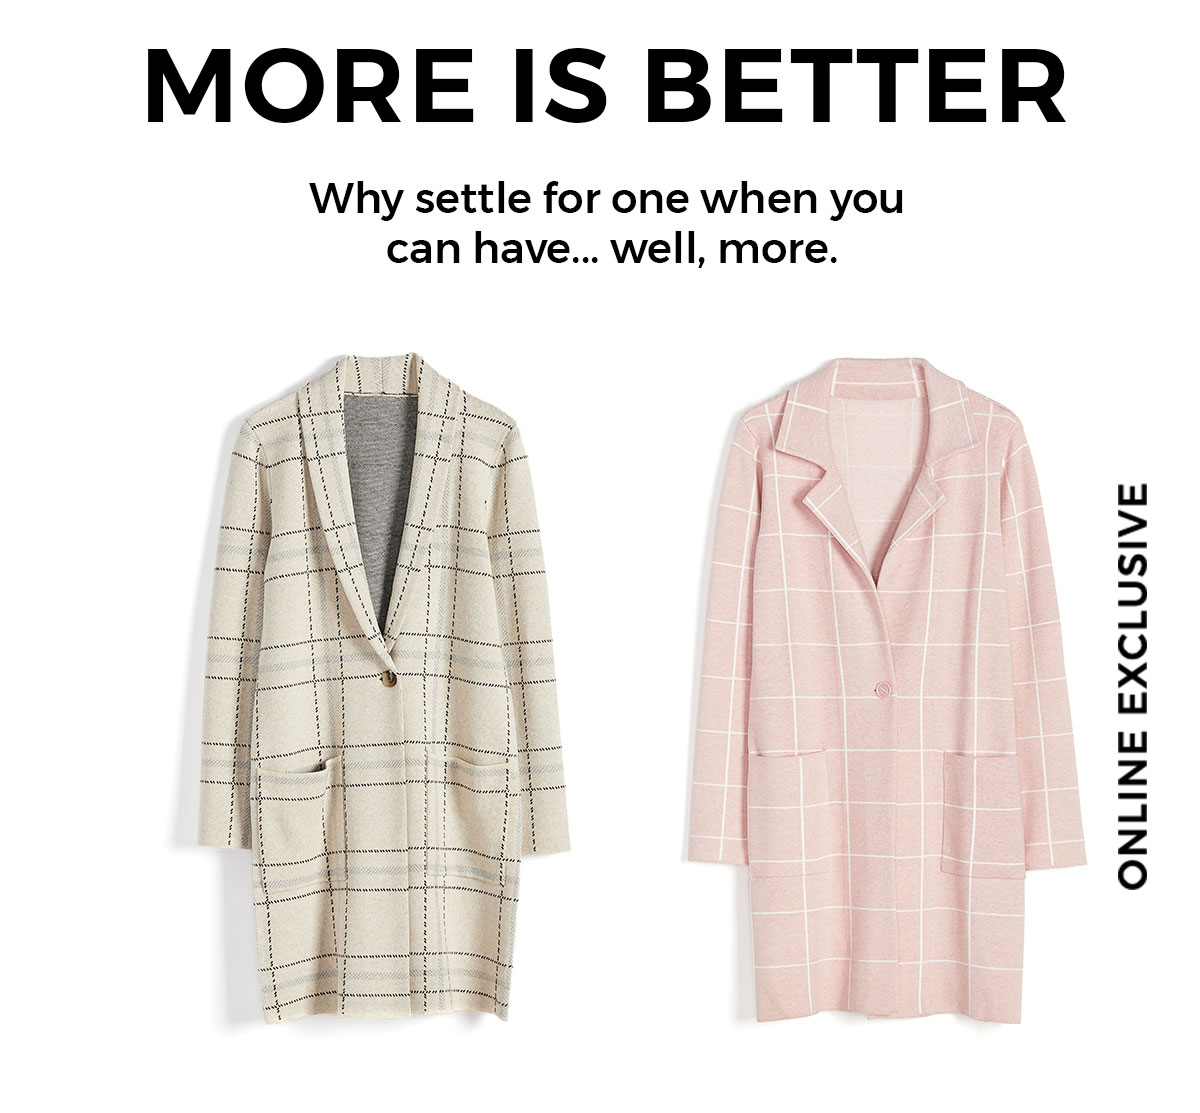 MORE IS BETTER Why settle for one when you can have... well, more. CTA: Shop now